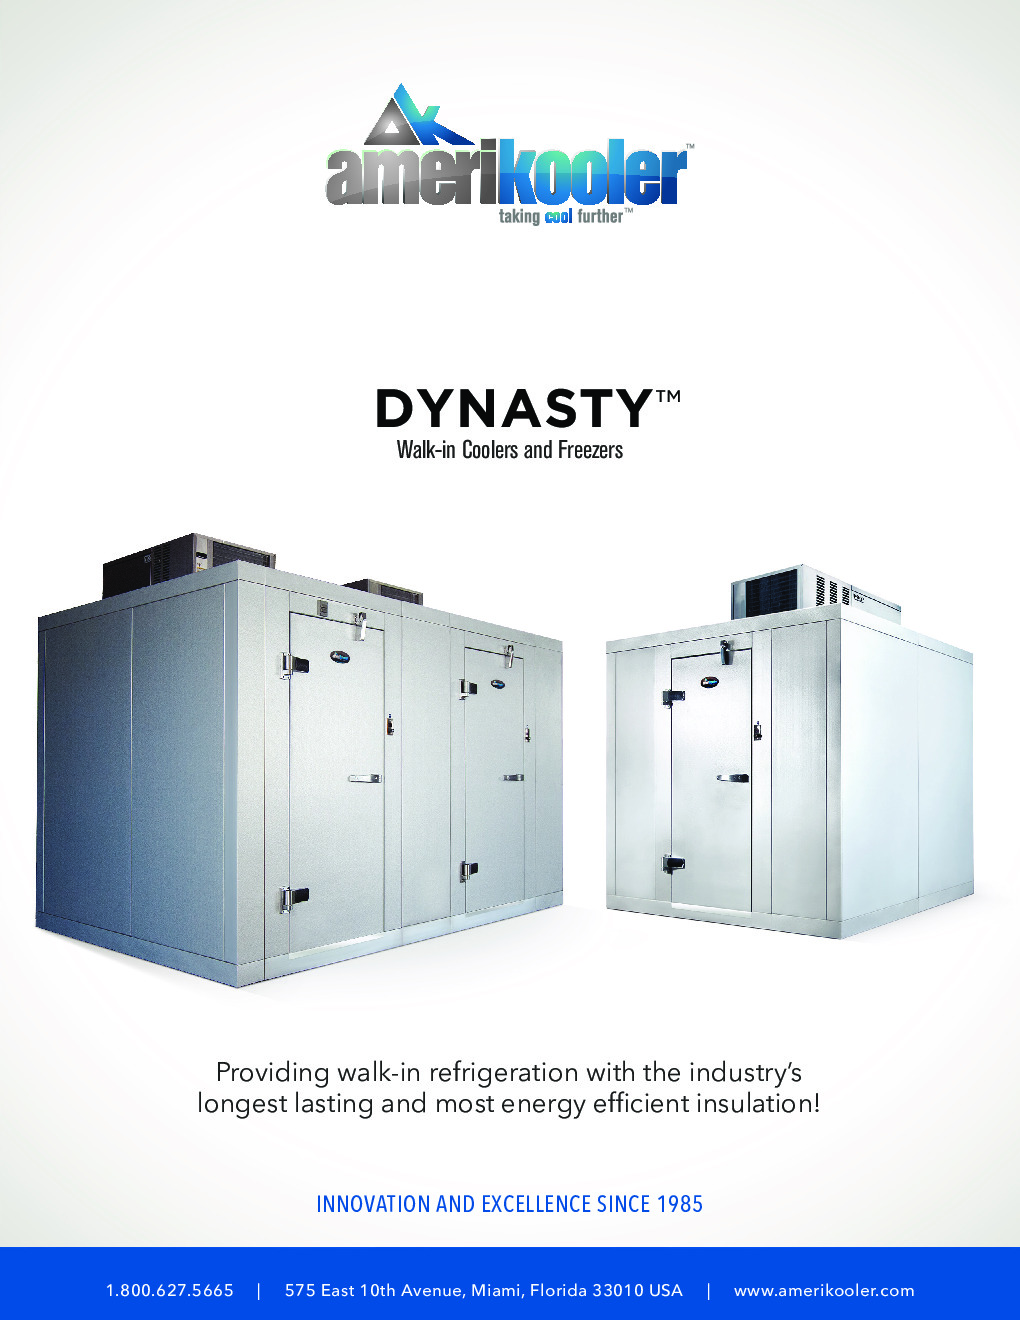 AmeriKooler DW101677N-7/9-RM 10' X 16' Walk-In Cooler, 9' L Cooler without Floor and 7' L Freezer, Remote